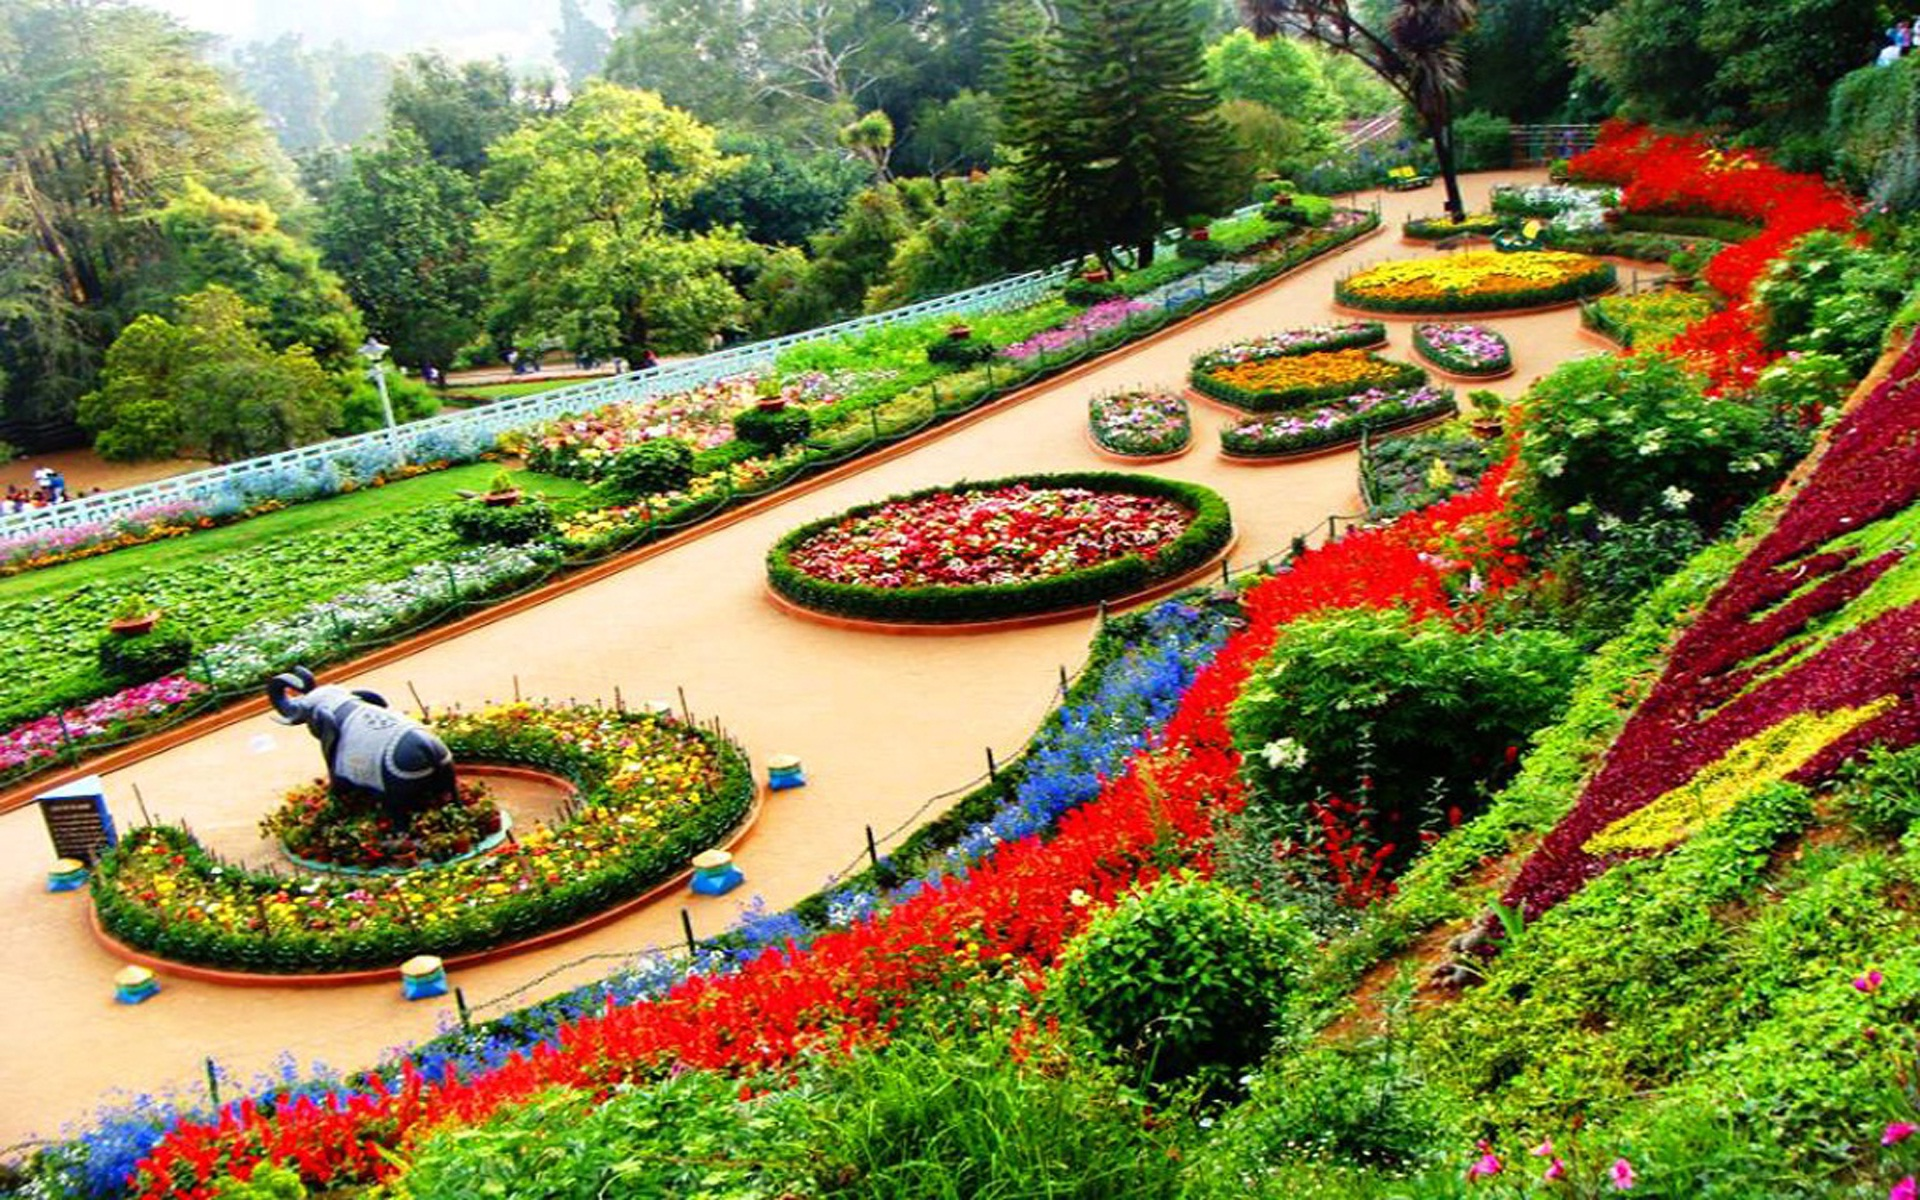 http://www.prasannaholidays.com/wp-content/uploads/2015/10/ws_Botanical_Garden_Ooty_India_1920x1200.jpg